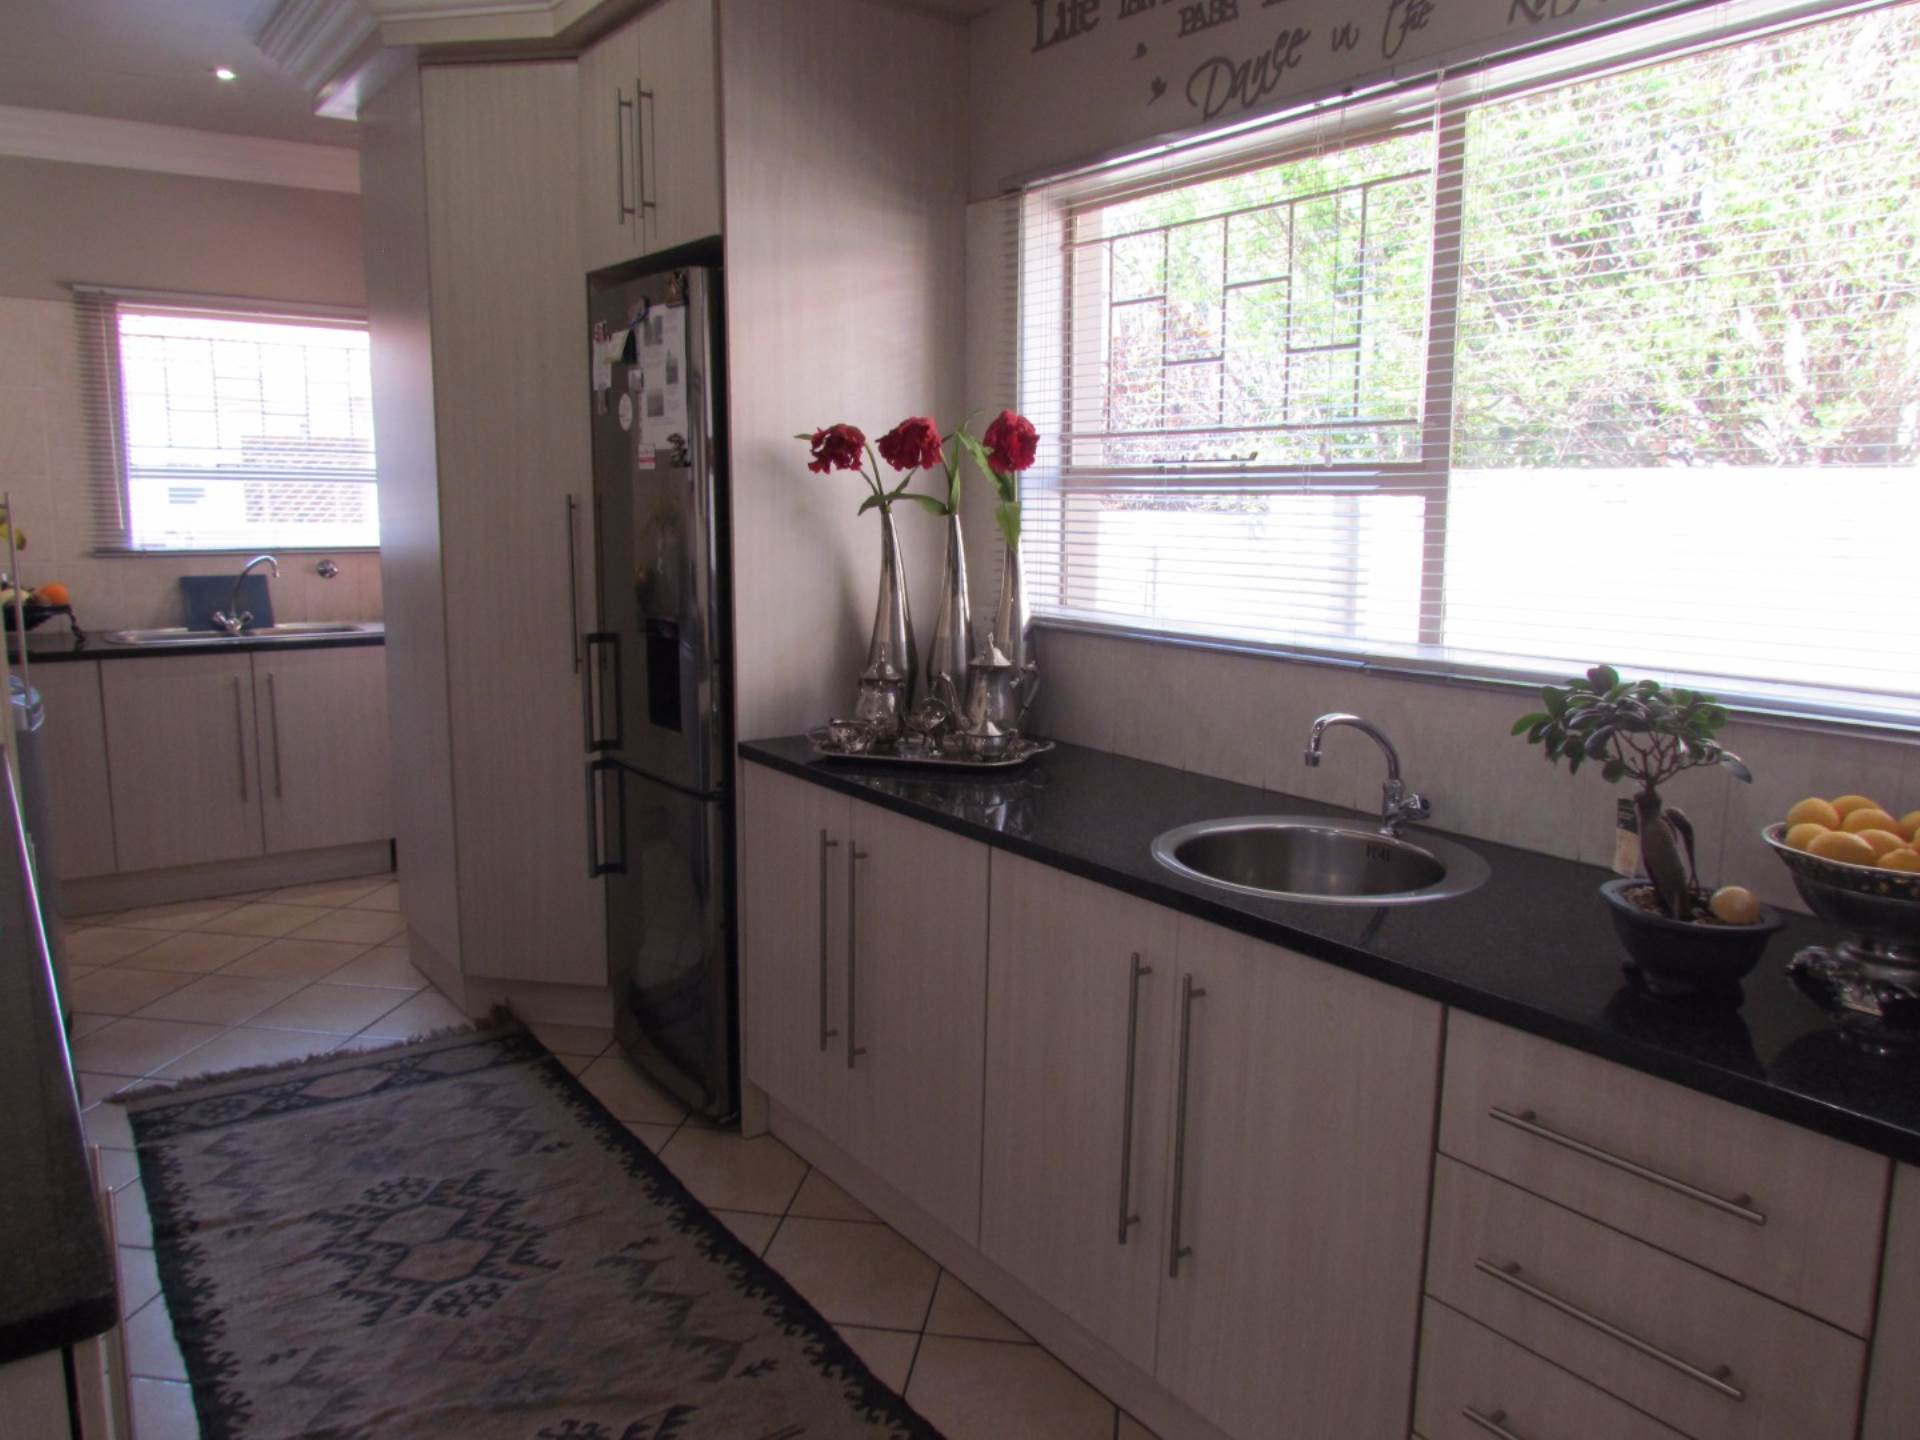 Rietvalleirand And Ext property for sale. Ref No: 13534328. Picture no 35